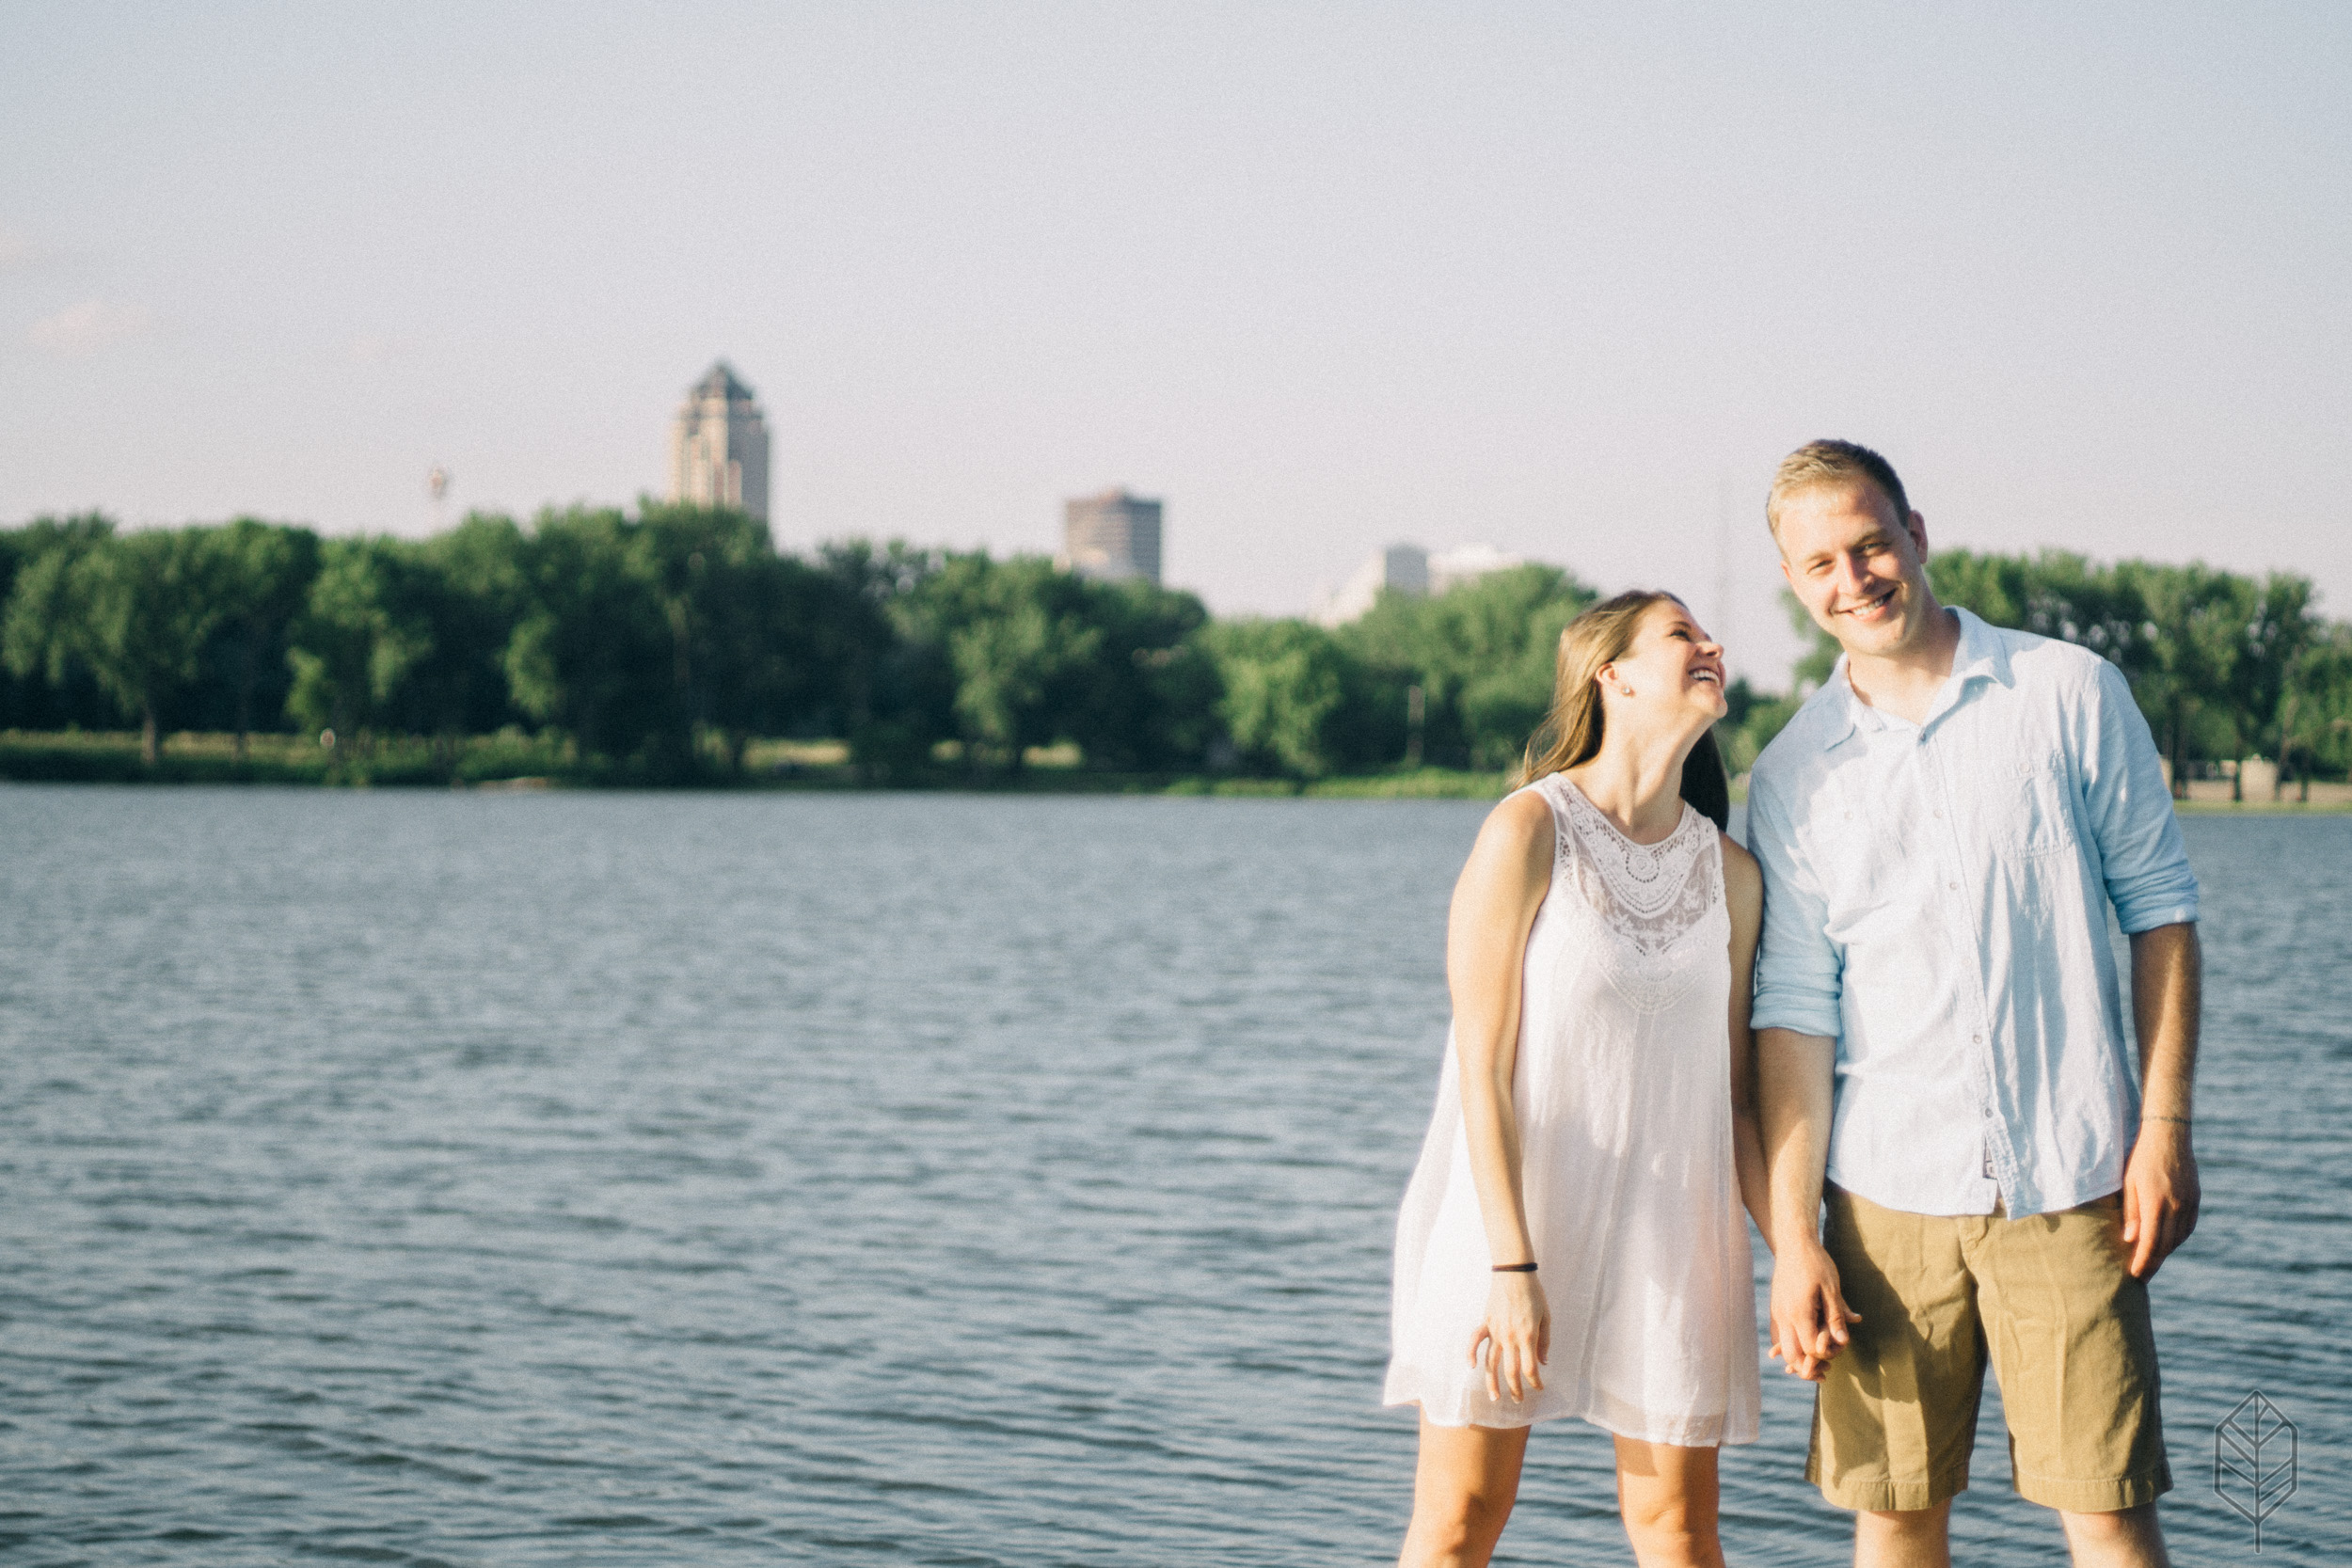 Johnsons Creative | Jake + Kayla, Engagement Photos, Photography, Cedar Falls, Iowa, Midwest, Des Moines